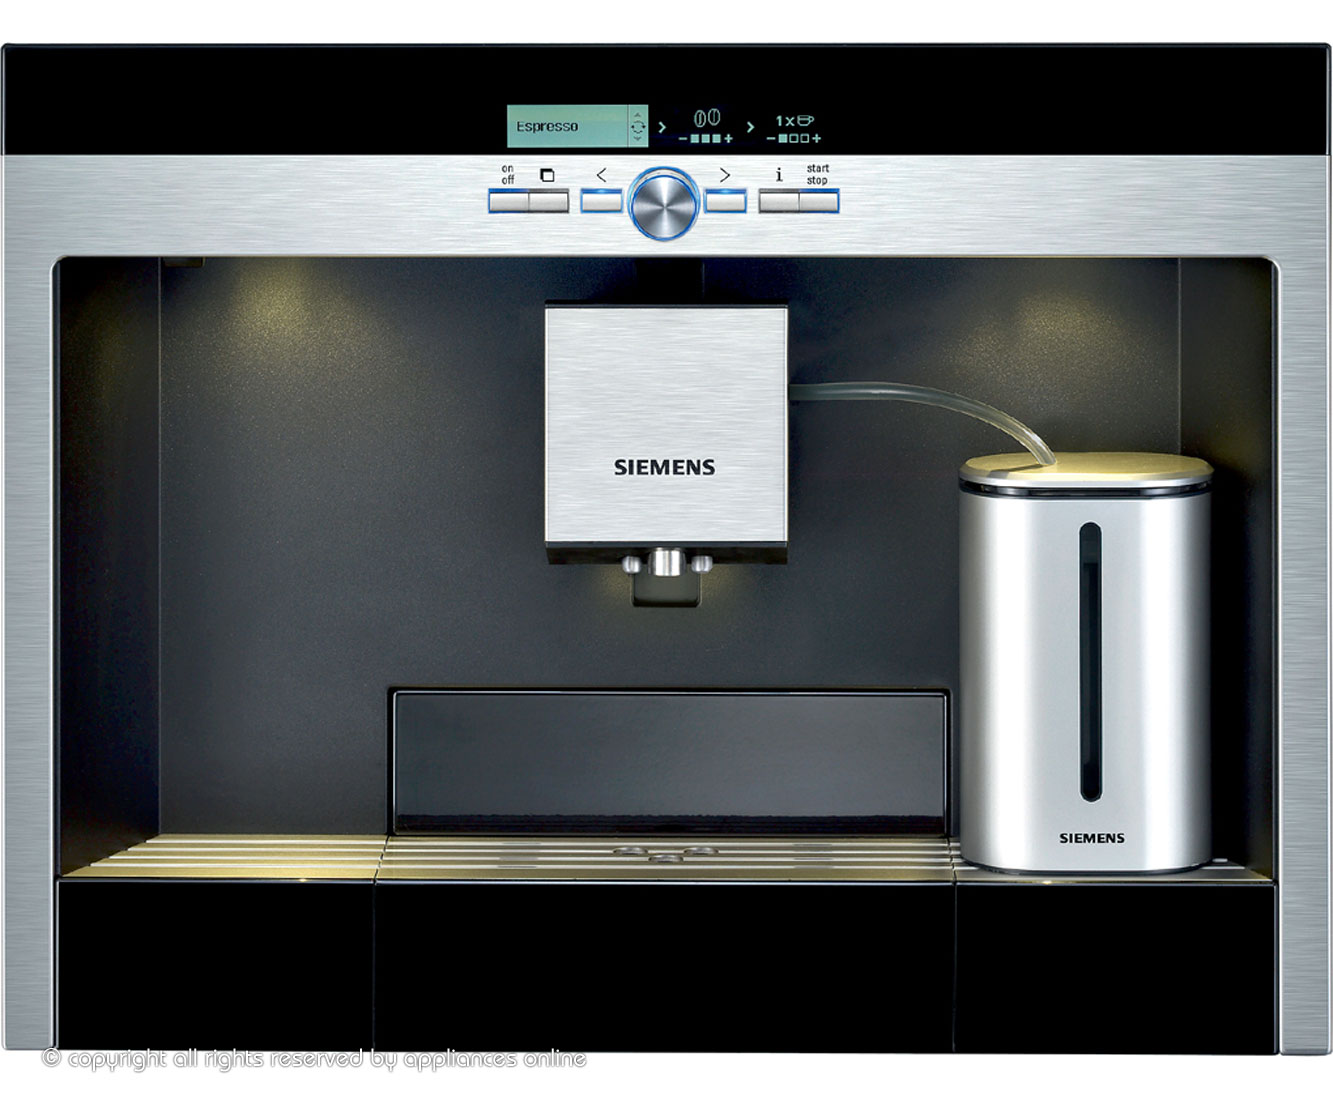 Siemens Einbau Kaffeevollautomat built in coffee maker ceramics